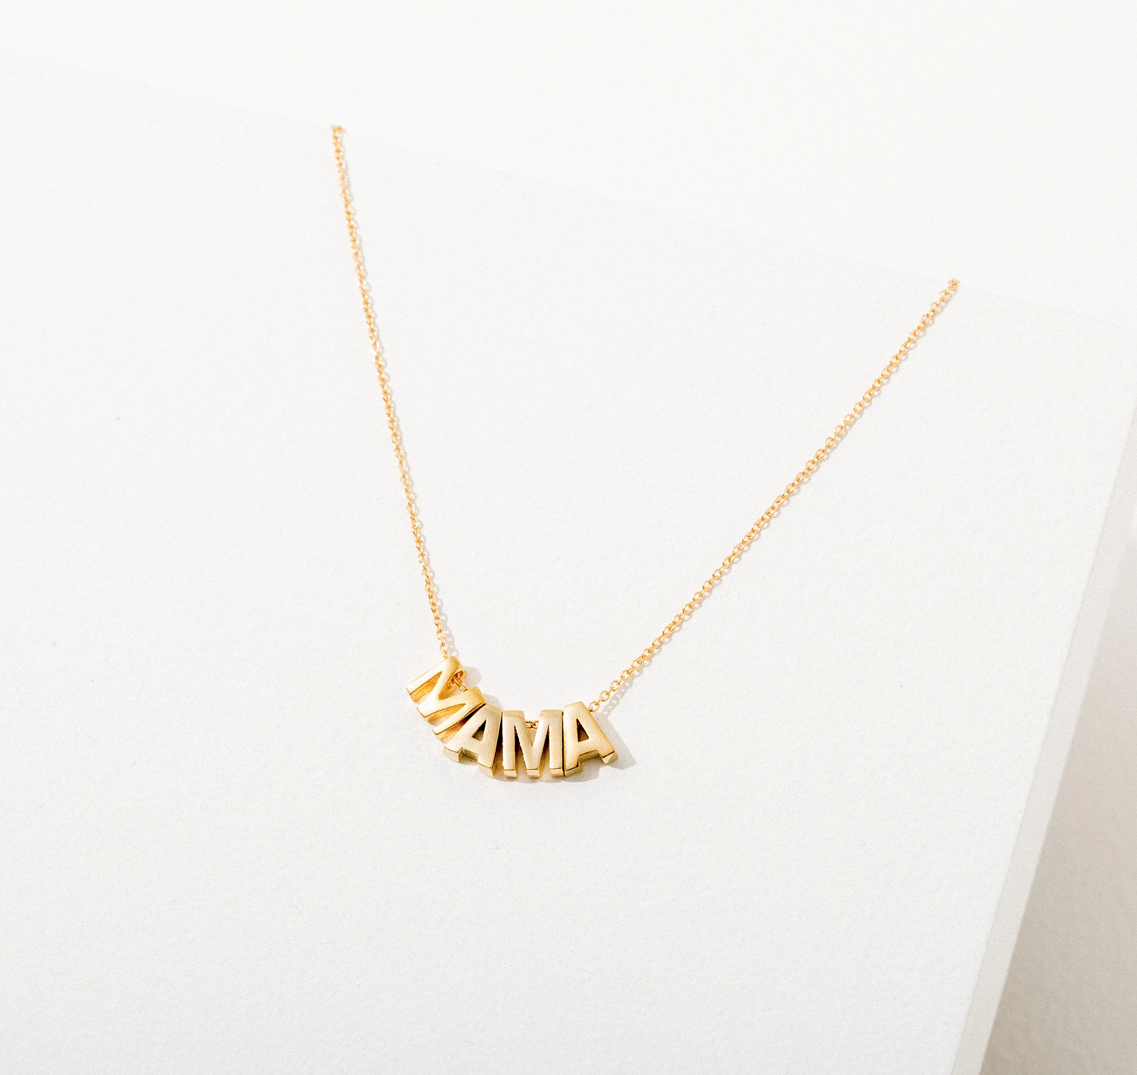 Larissa Loden Jewelry - LLJ Mama Necklace, 24k Plated Gold